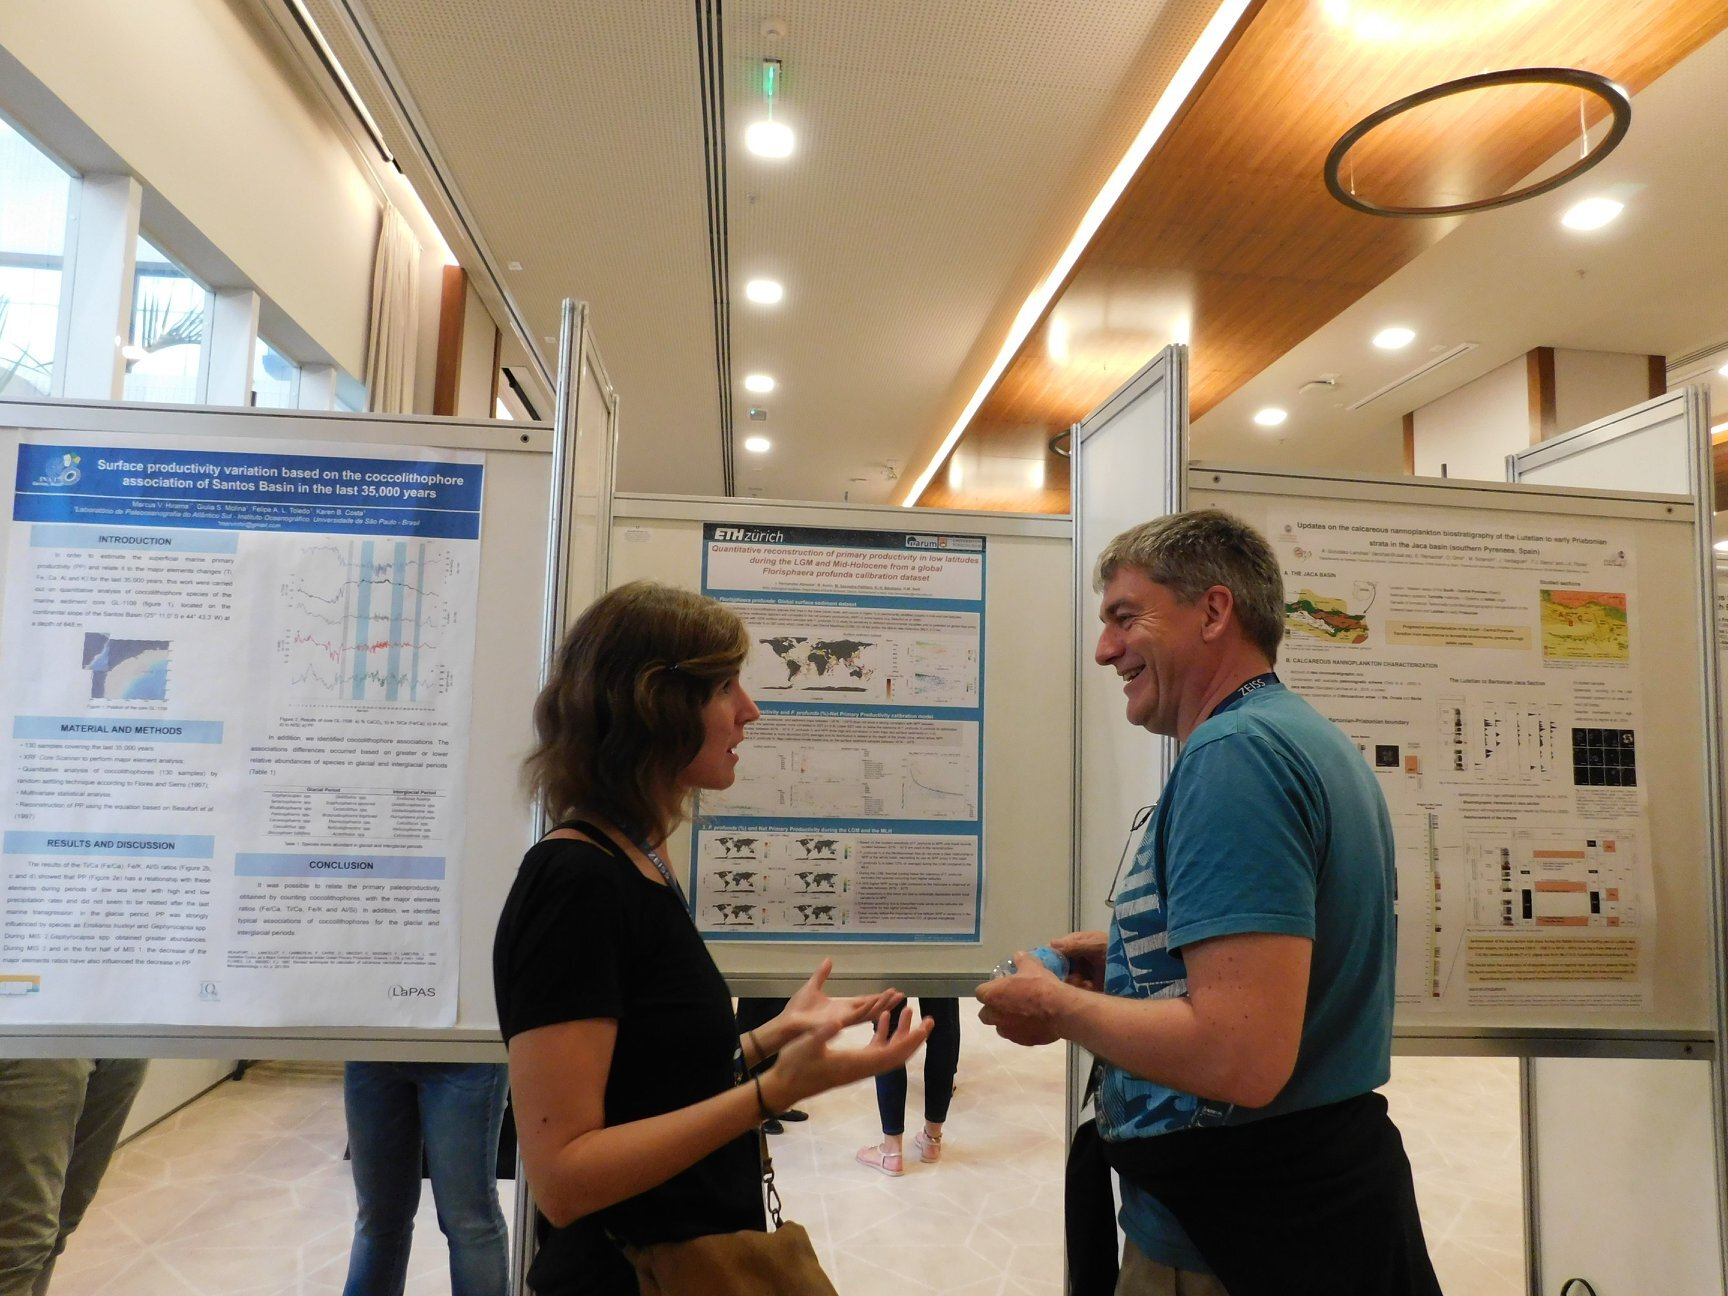 Catarina and Kalle Baumann, discussing science during the poster session :)